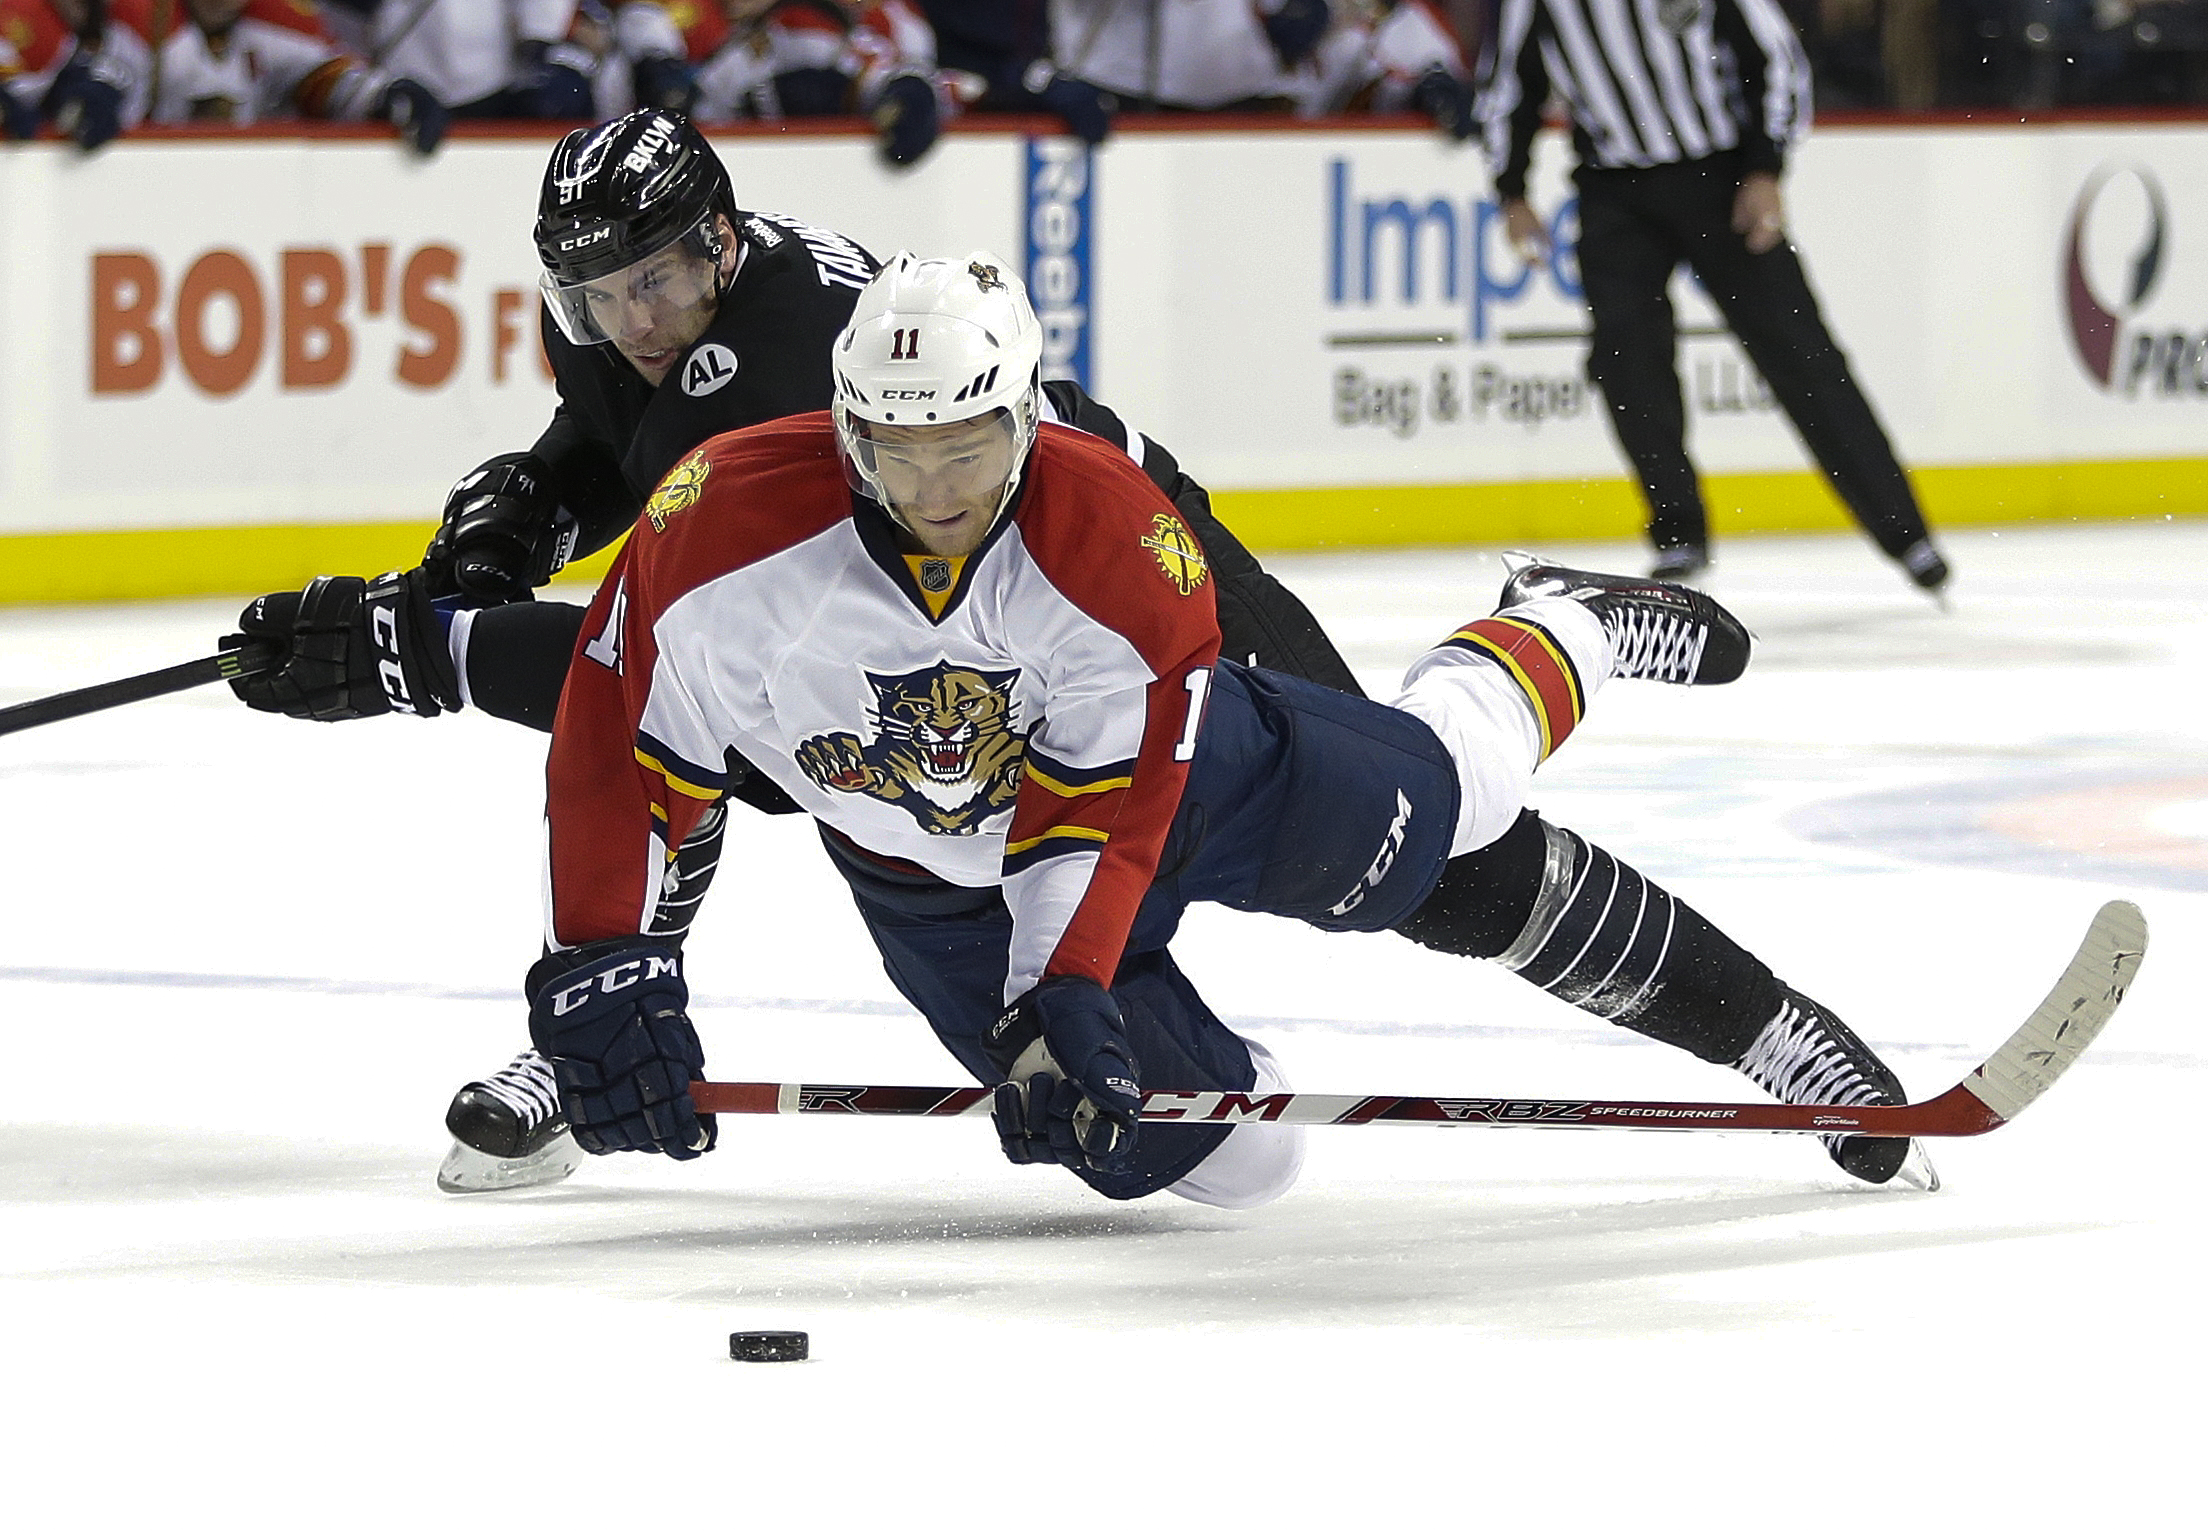 Florida Panthers' Jonathan Huberdeau (11) shoots the puck toward an empty net as New York Islanders' John Tavares (91) knocks him down during the third period of an NHL hockey game Tuesday, Dec. 15, 2015, in New York. Huberdeau was awarded the goal on the